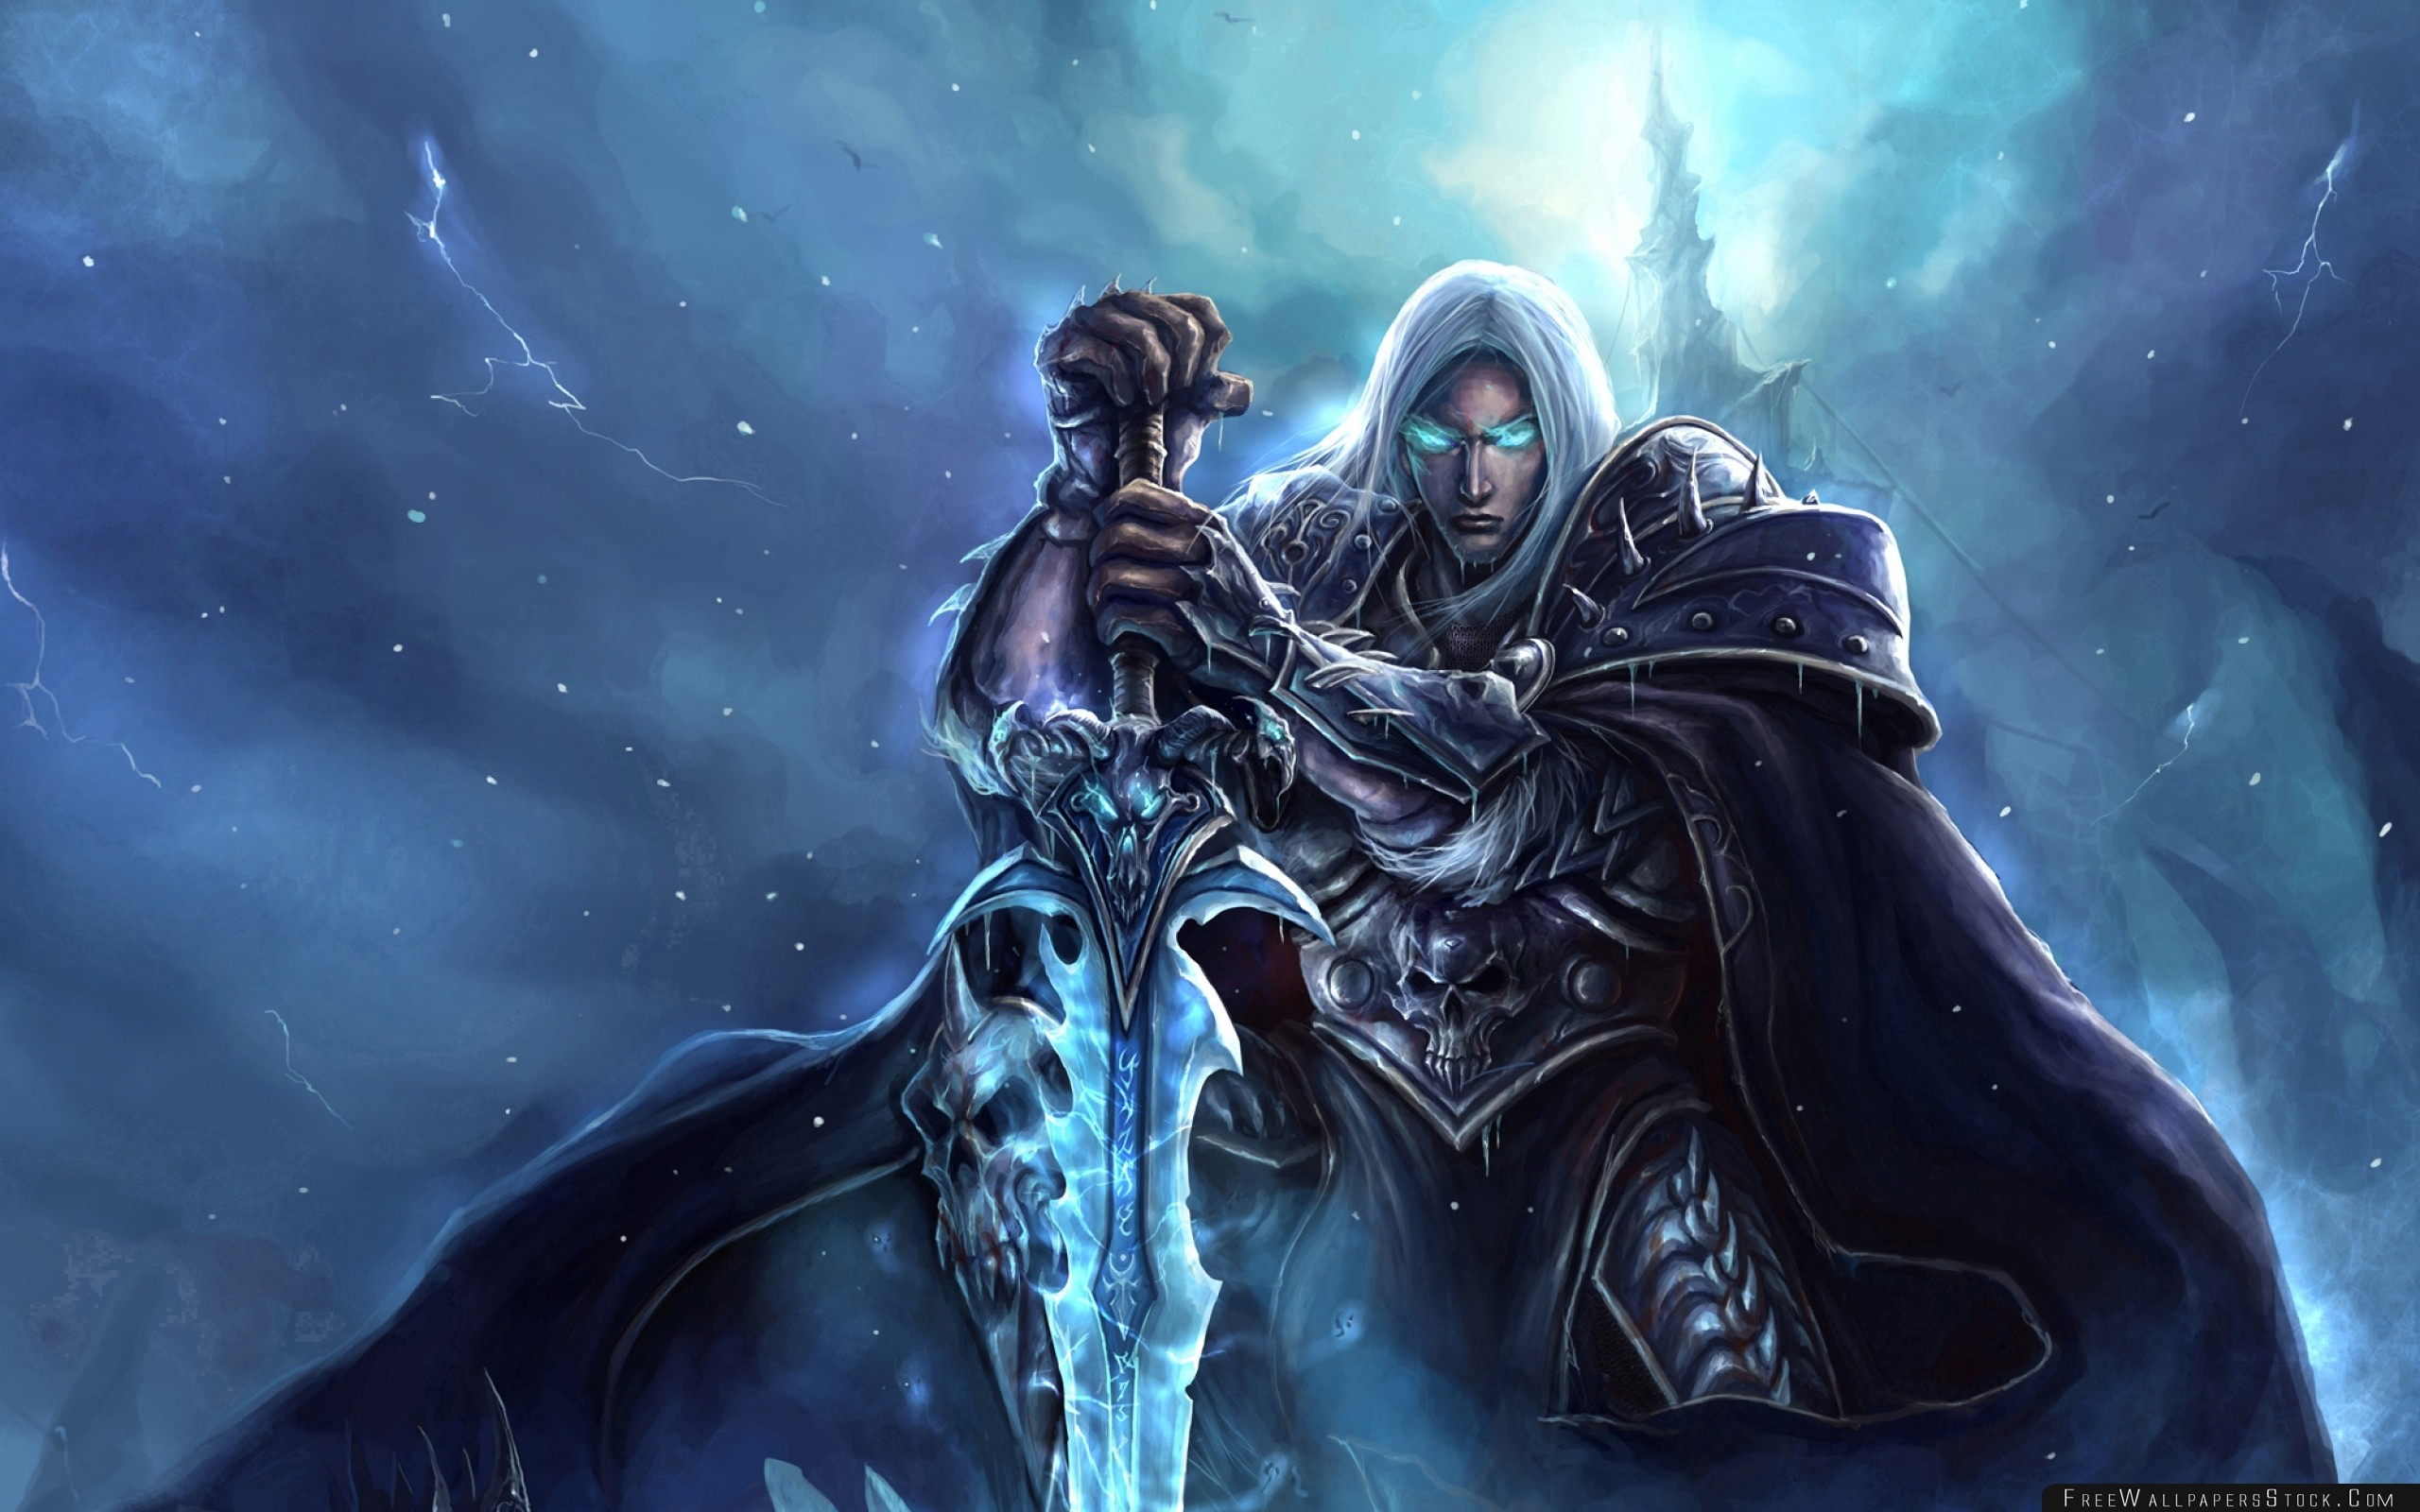 Download Free Wallpaper World   Warcraft Lich King Arthas Menethil